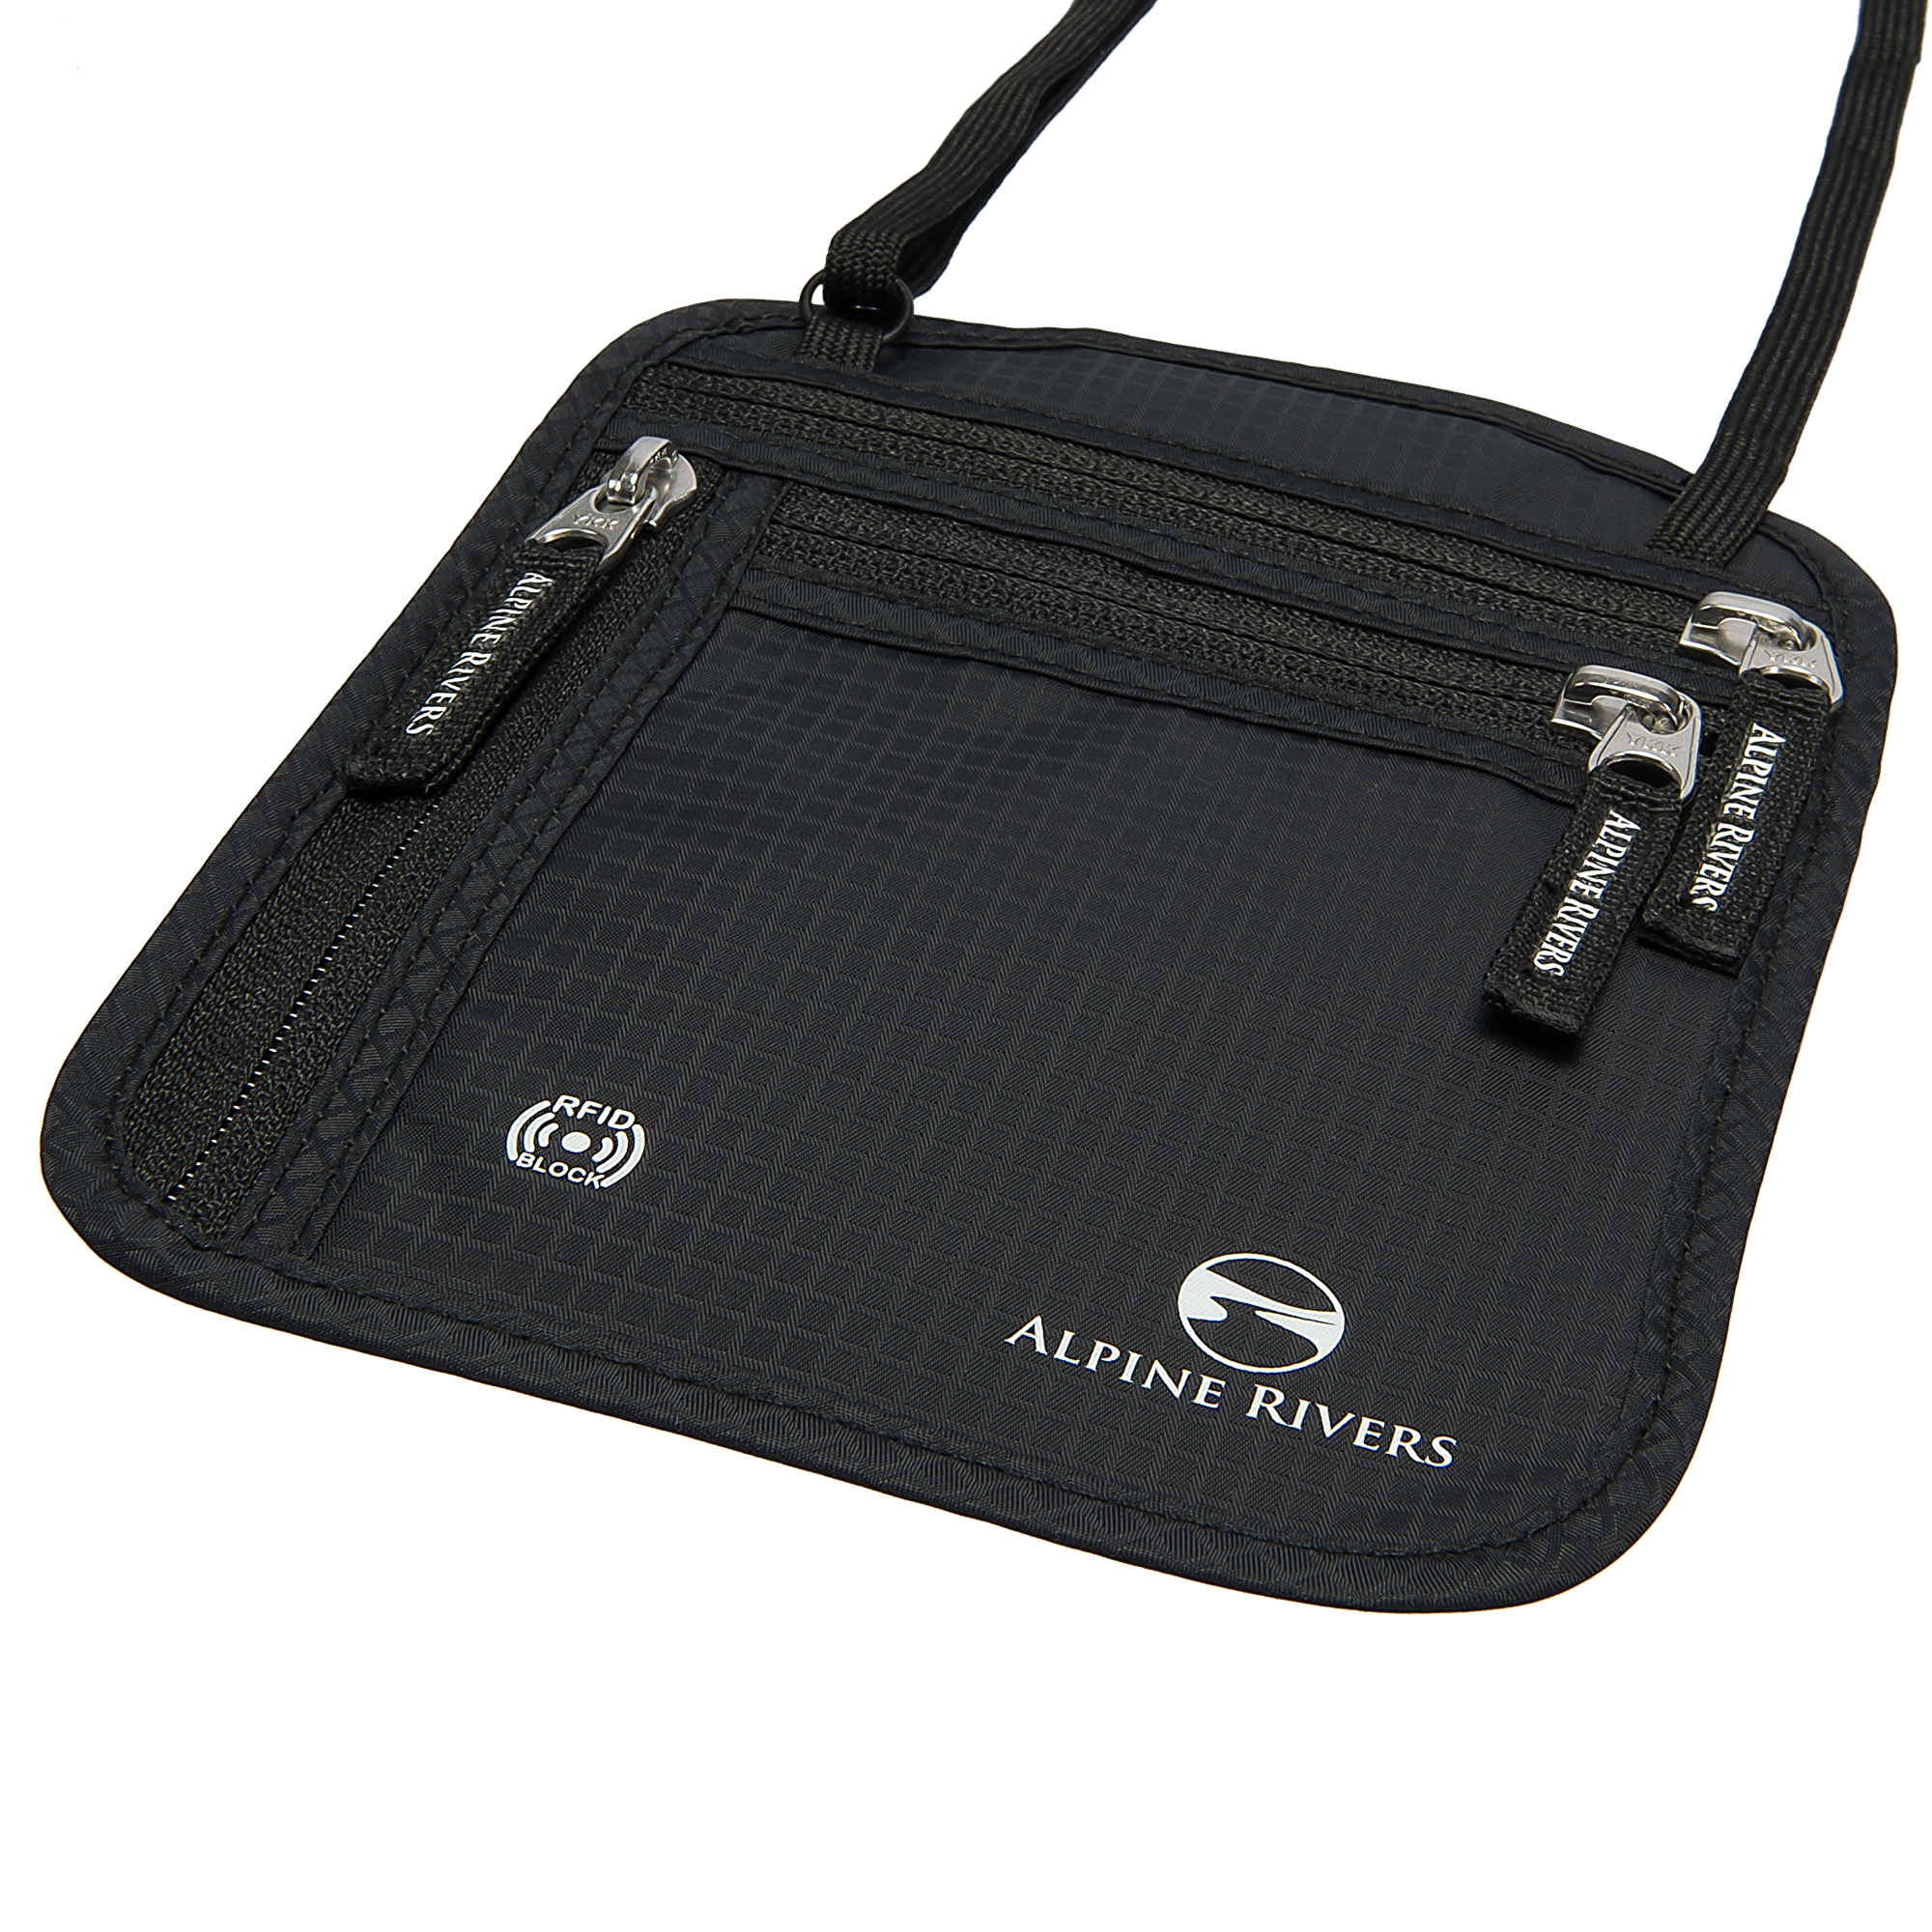 Alpine Rivers Premium Neck Wallet